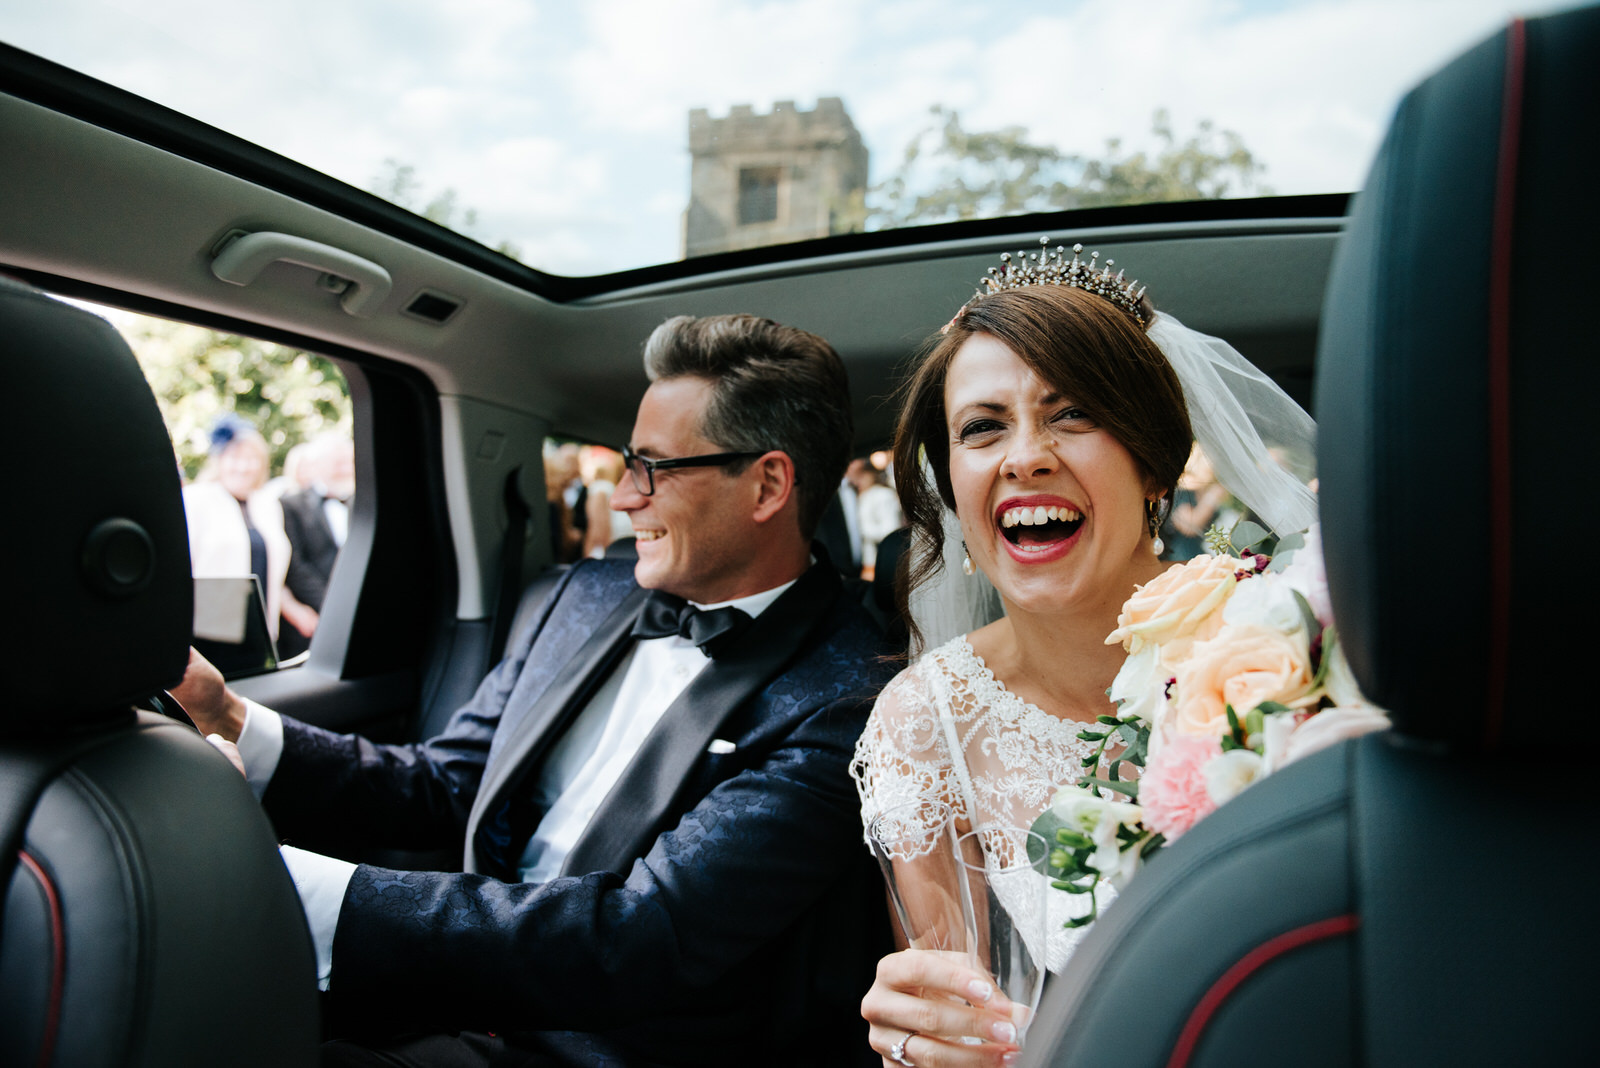 Bride and Groom sit inside car and open bottle of Champagne whil